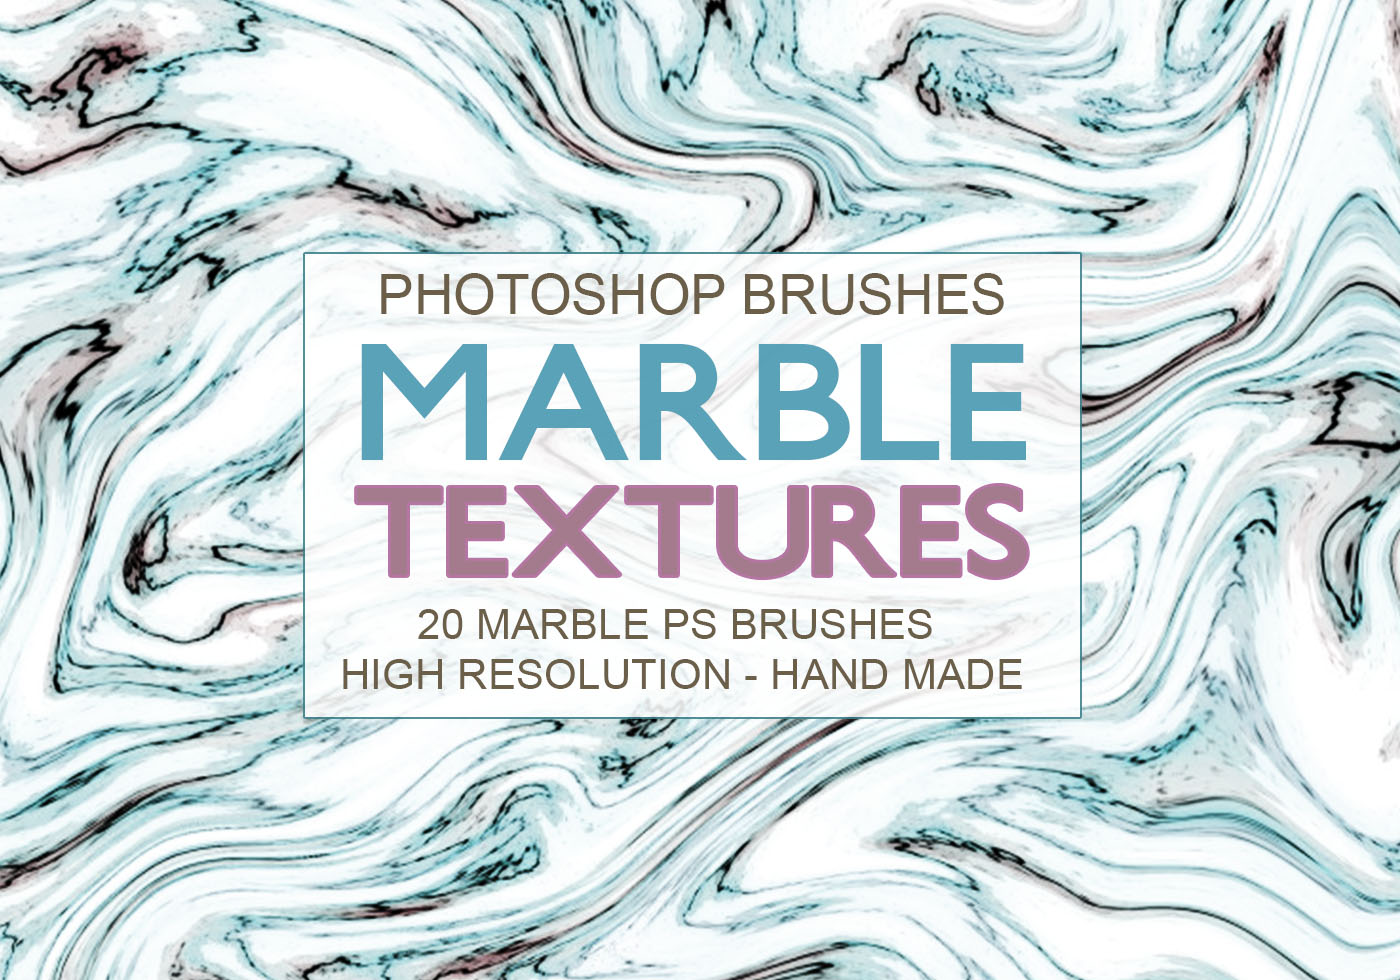 3d Wallpaper Maker Free Download 20 Marble Texture Ps Brushes Abr Free Photoshop Brushes